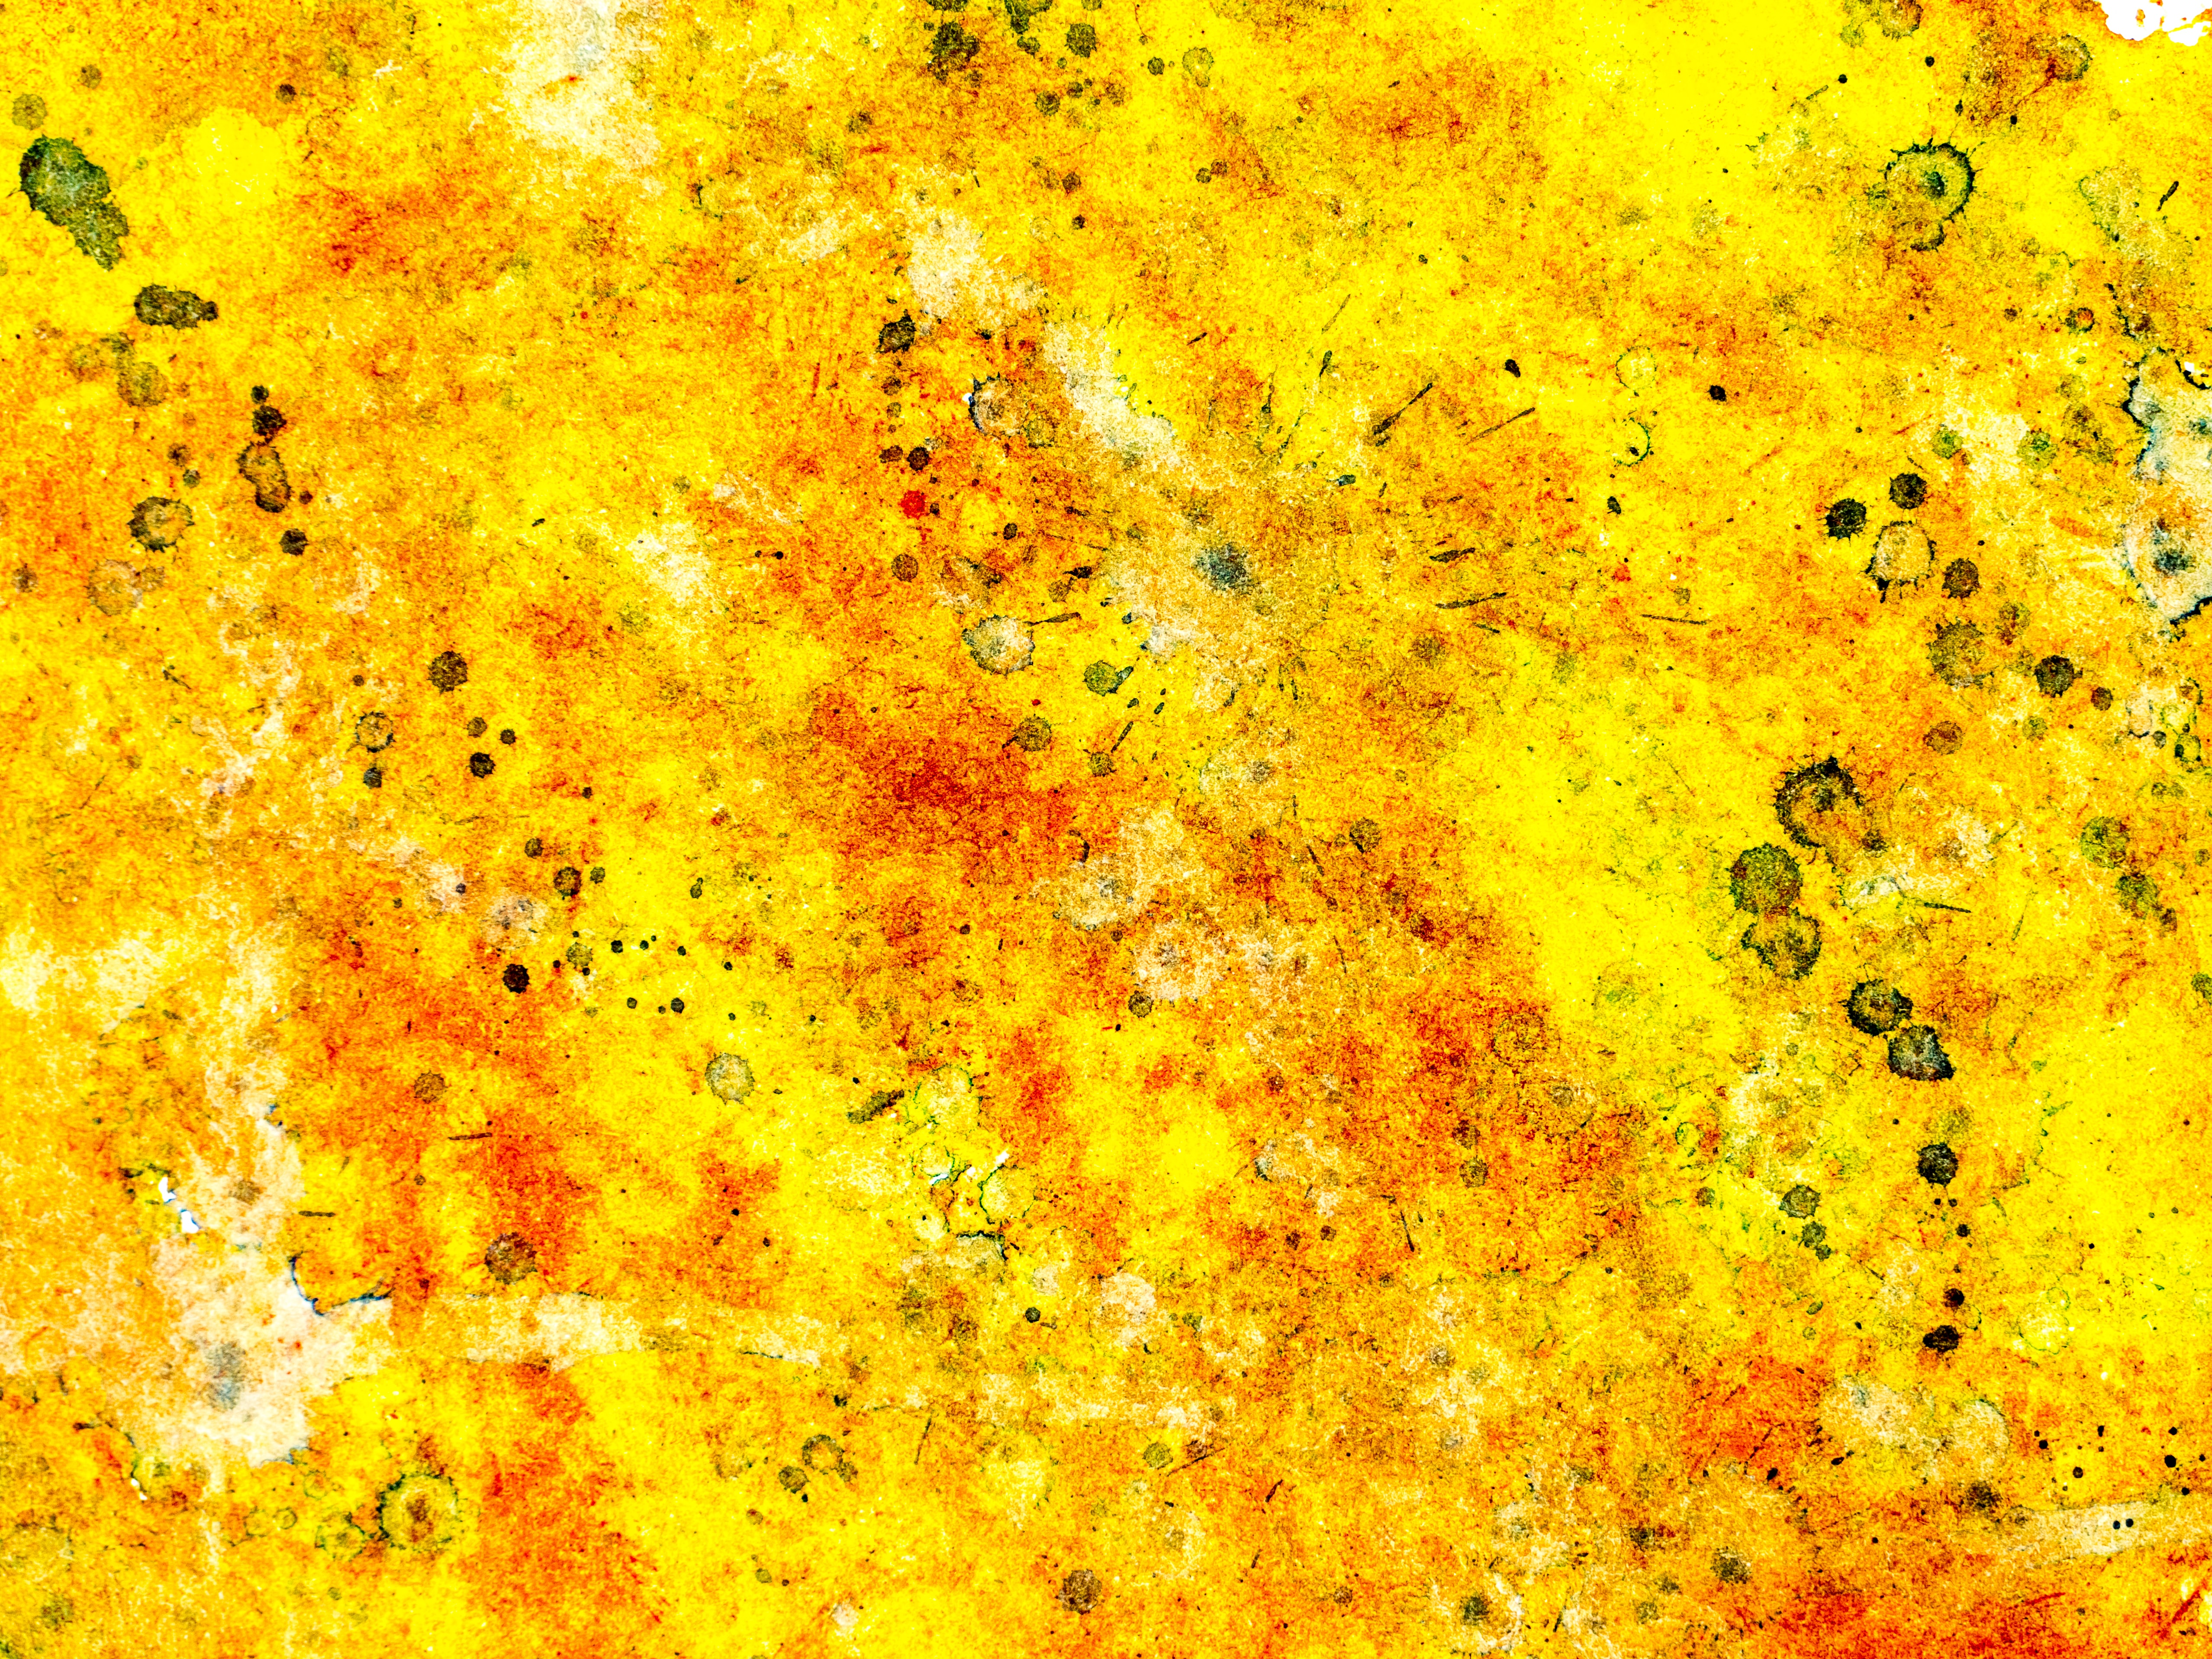 154793 download wallpaper Abstract, Paint, Drops, Spray, Blots screensavers and pictures for free